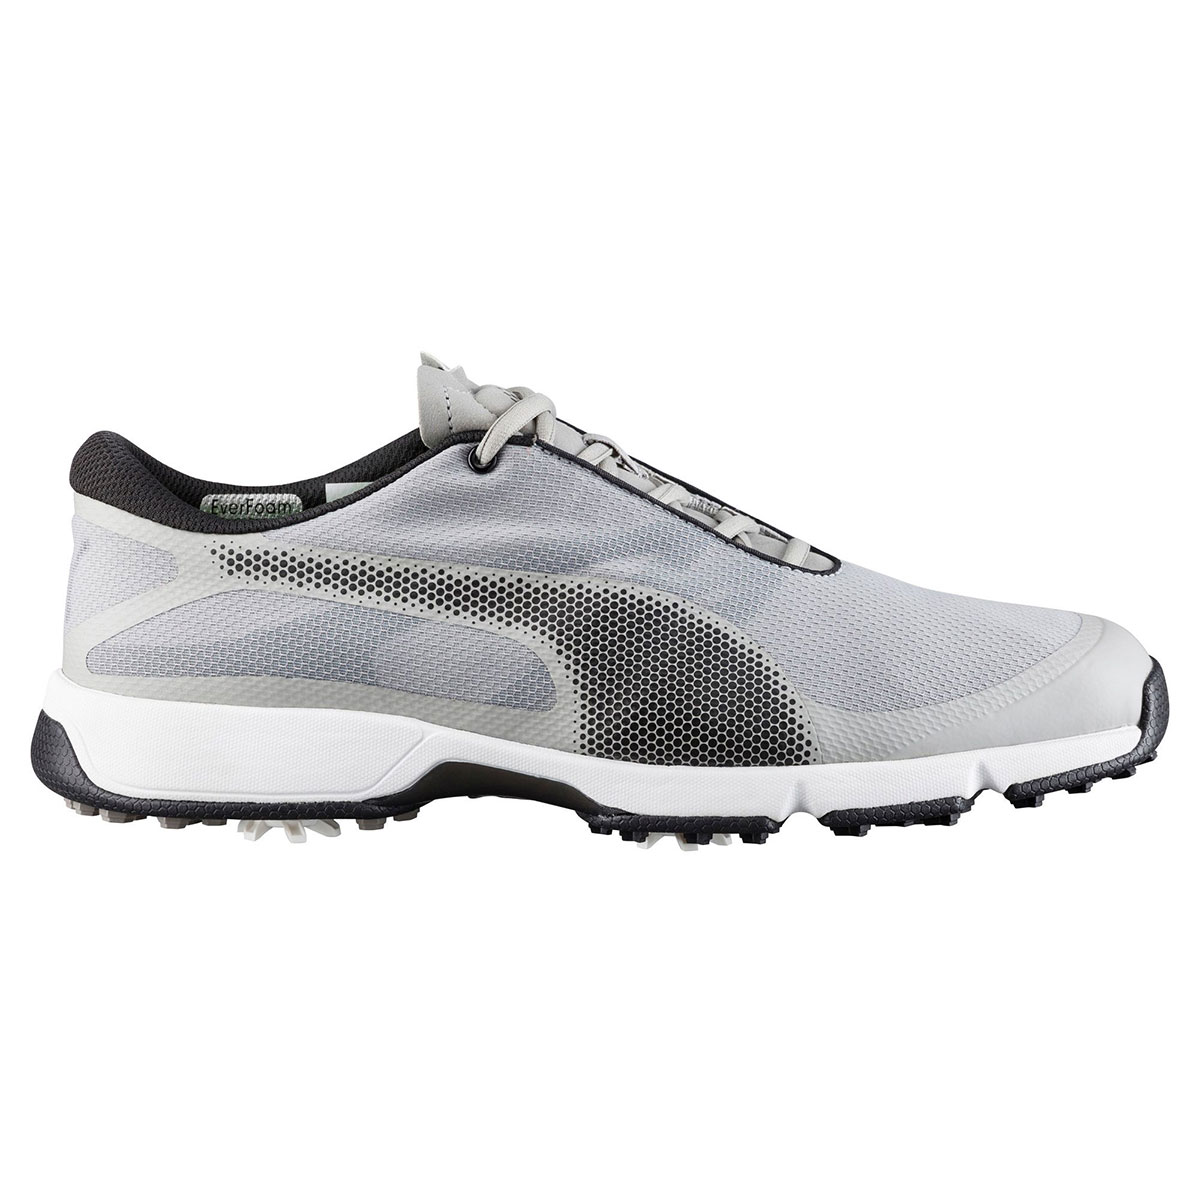 Puma-Golf-Mens-Ignite-Drive-Sport-Waterproof-Golf-Shoes-Breathable-41-OFF-RRP thumbnail 7